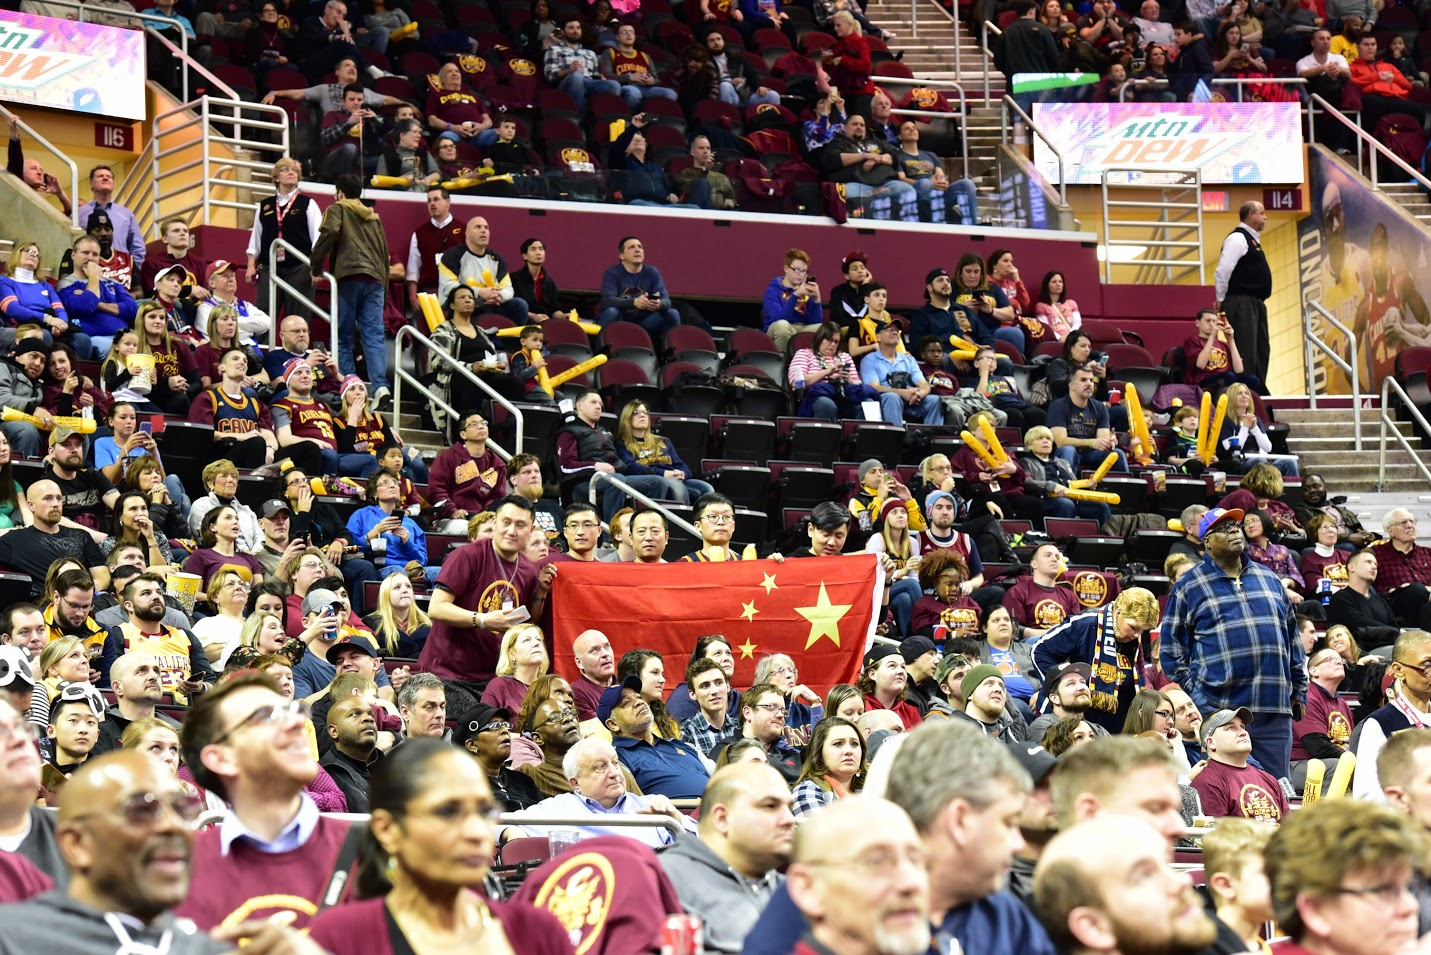 Lunar New Year at Quicken Loans Arena